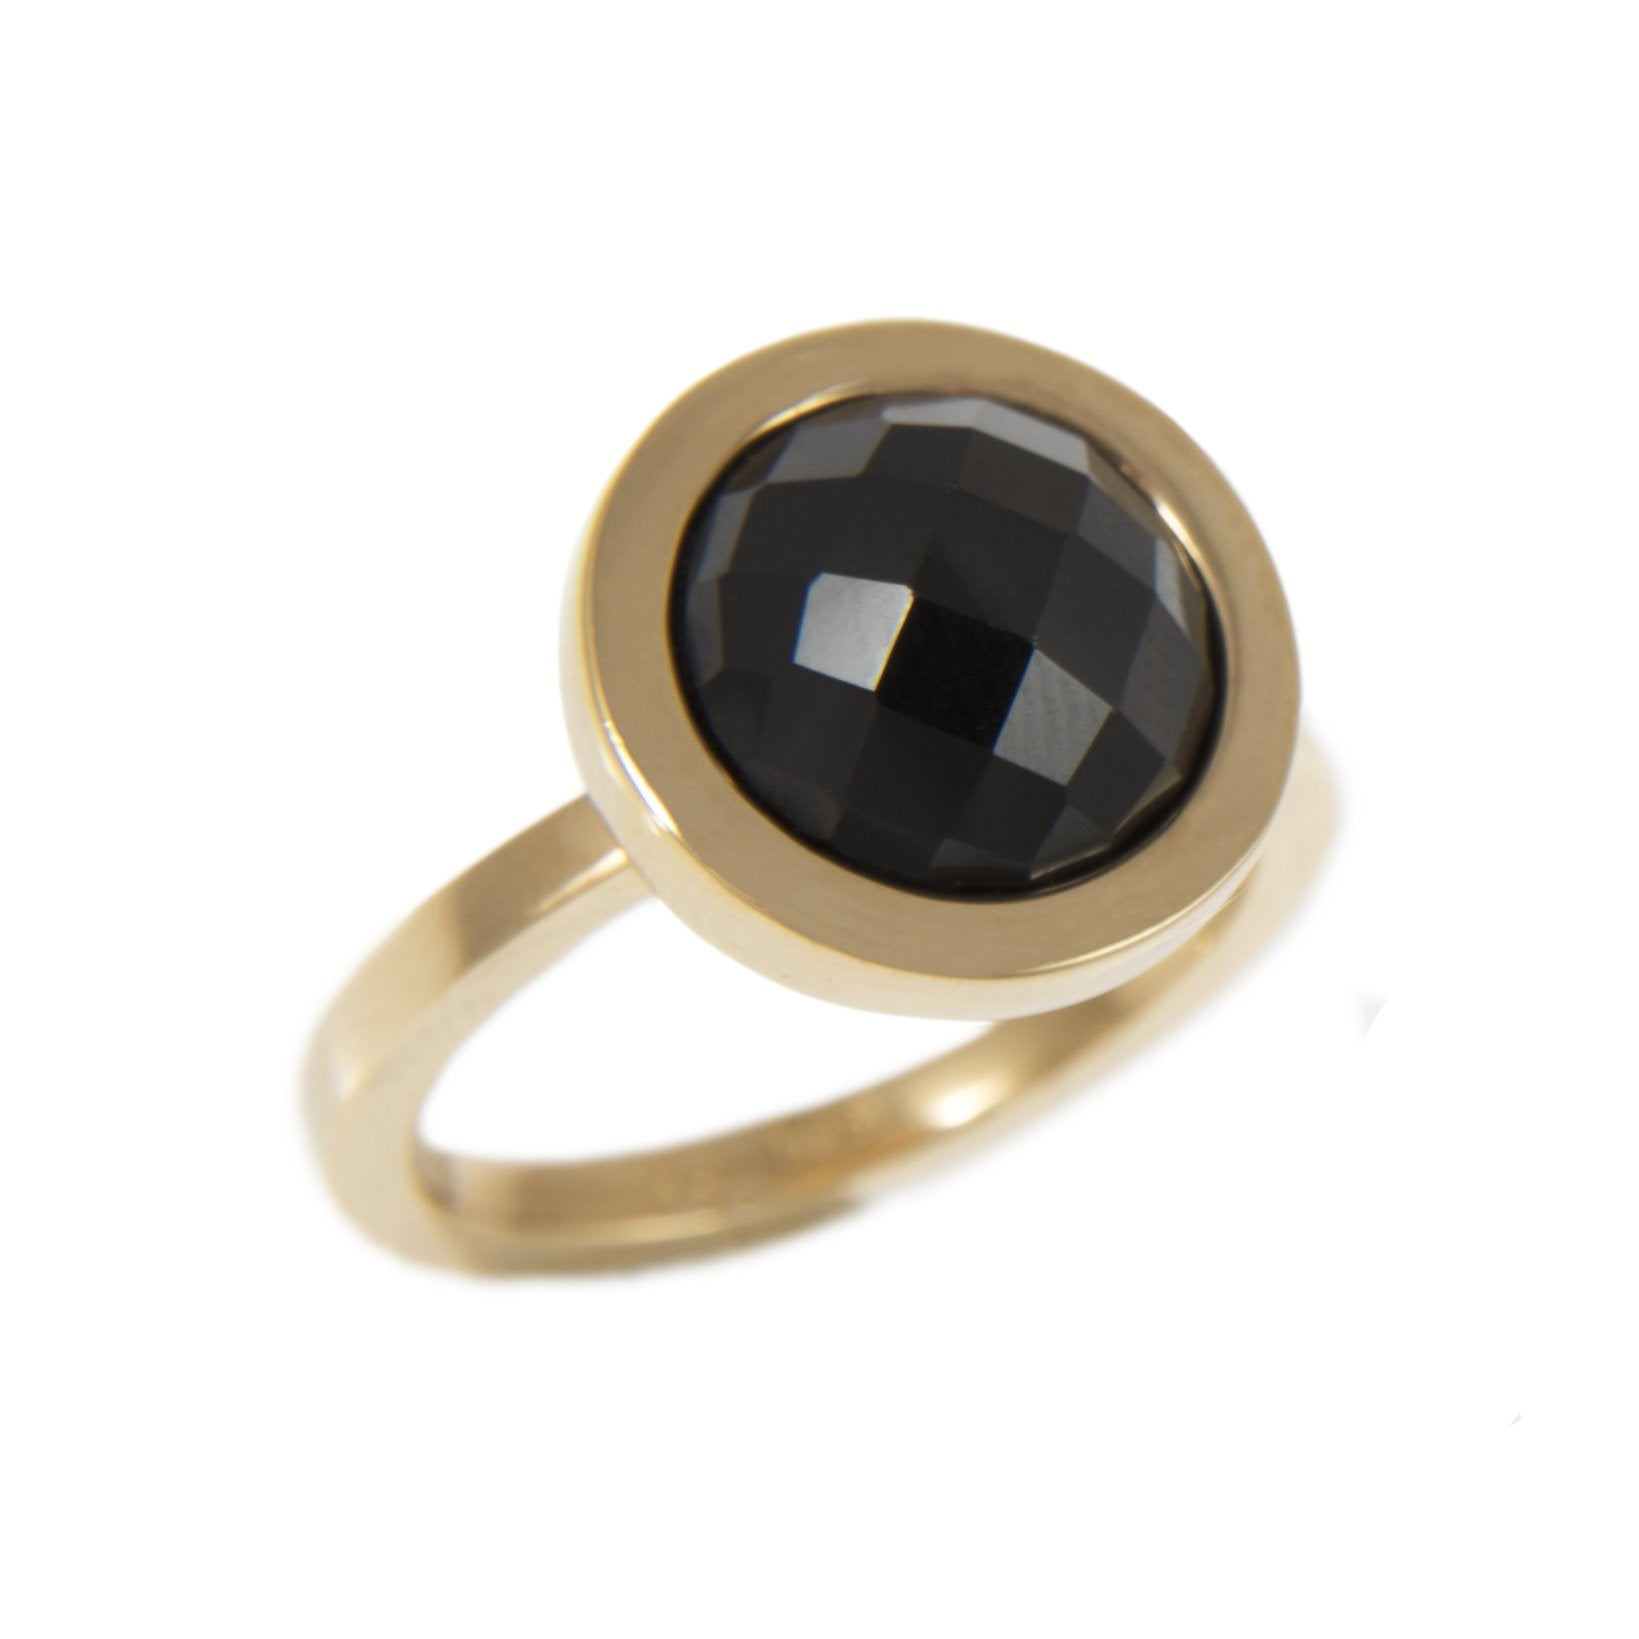 OXO BLACK SPINEL RING